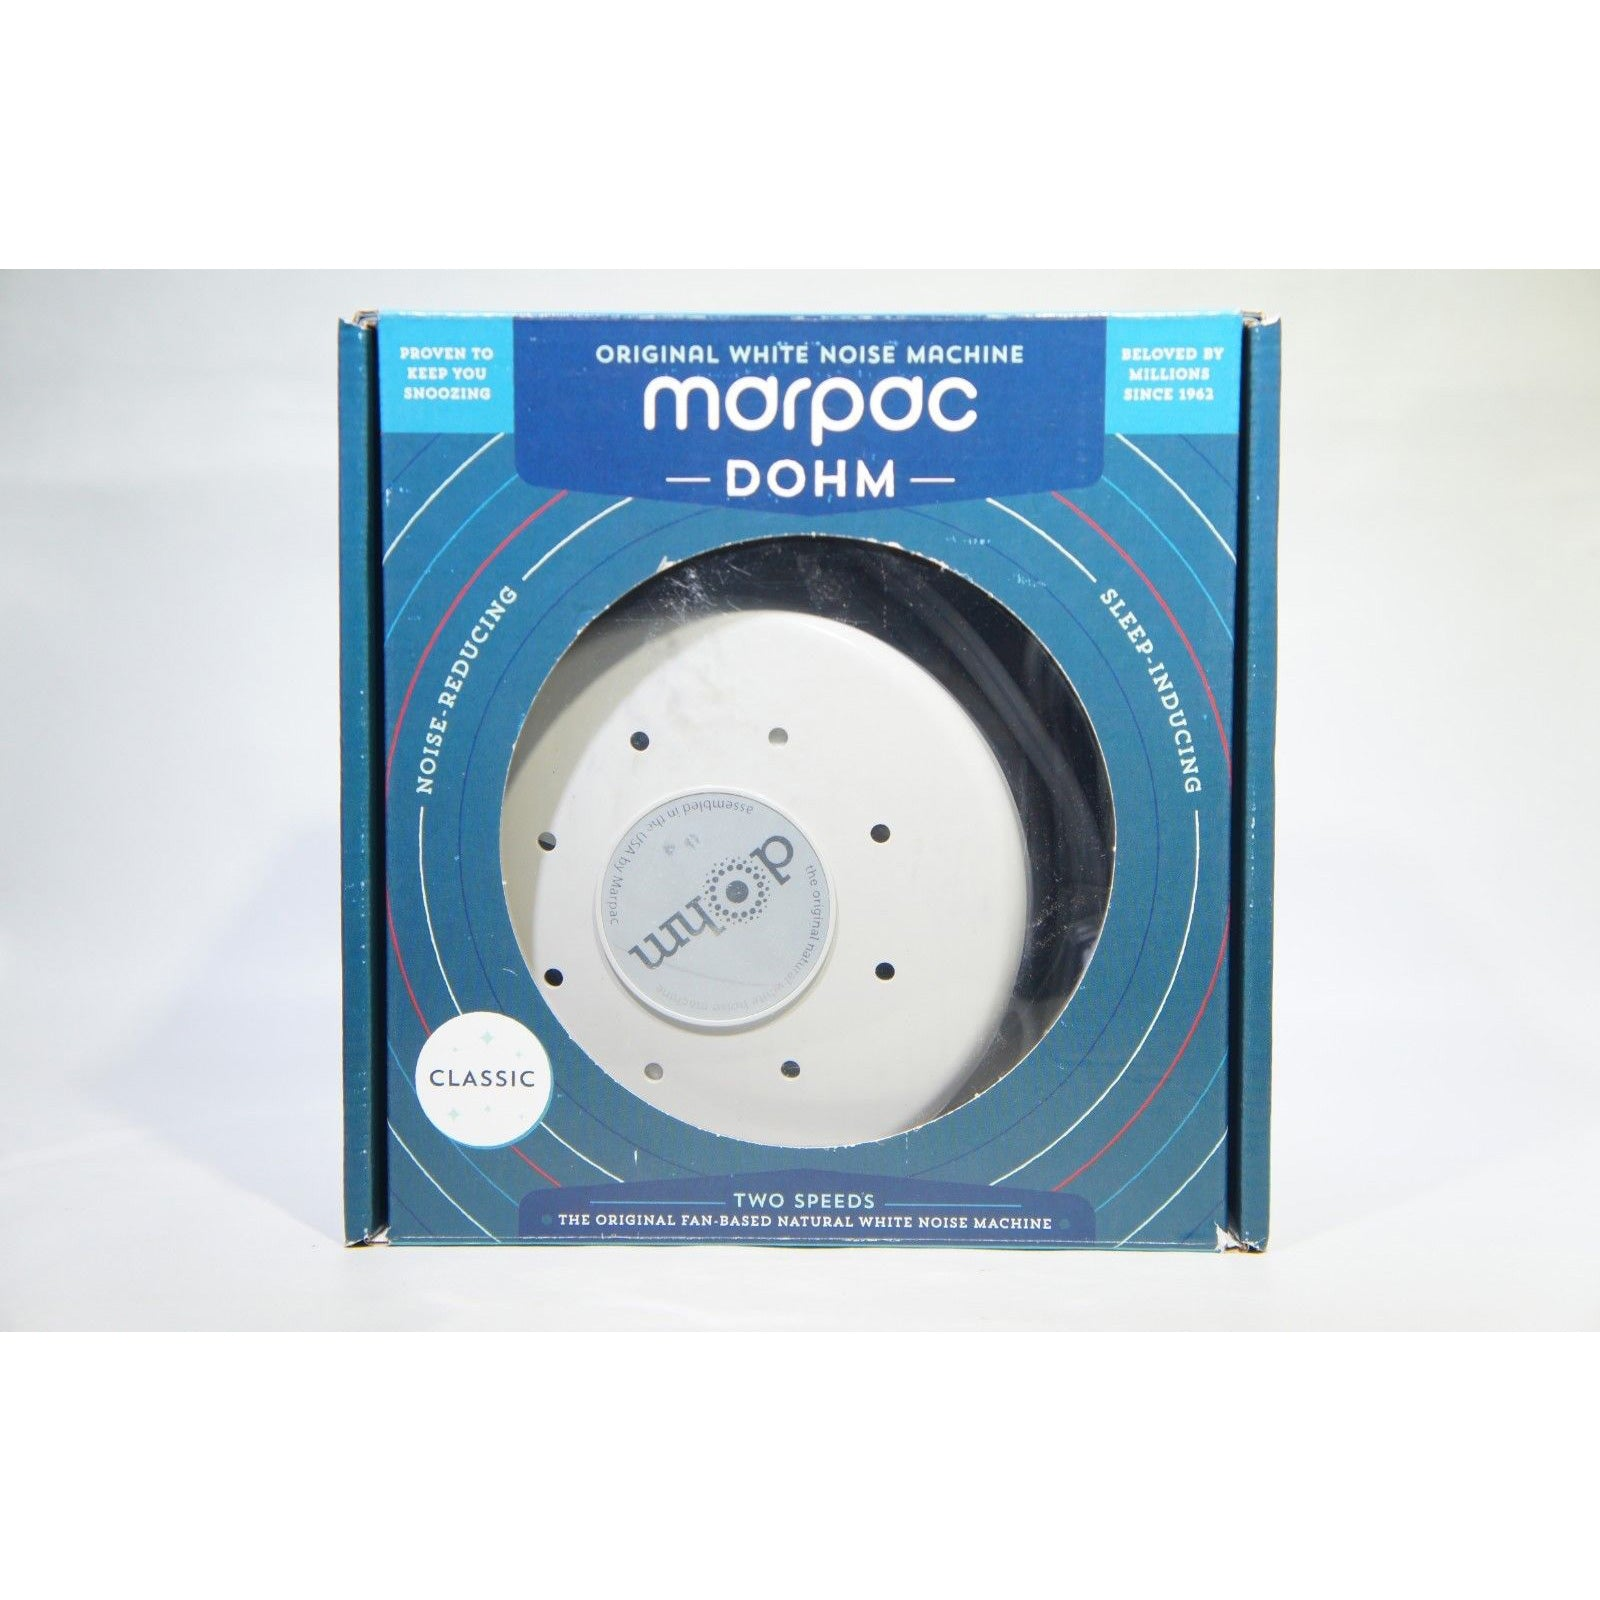 Marpac Dohm Classic White Noise Sound Machine, GRAY, 2 Speeds